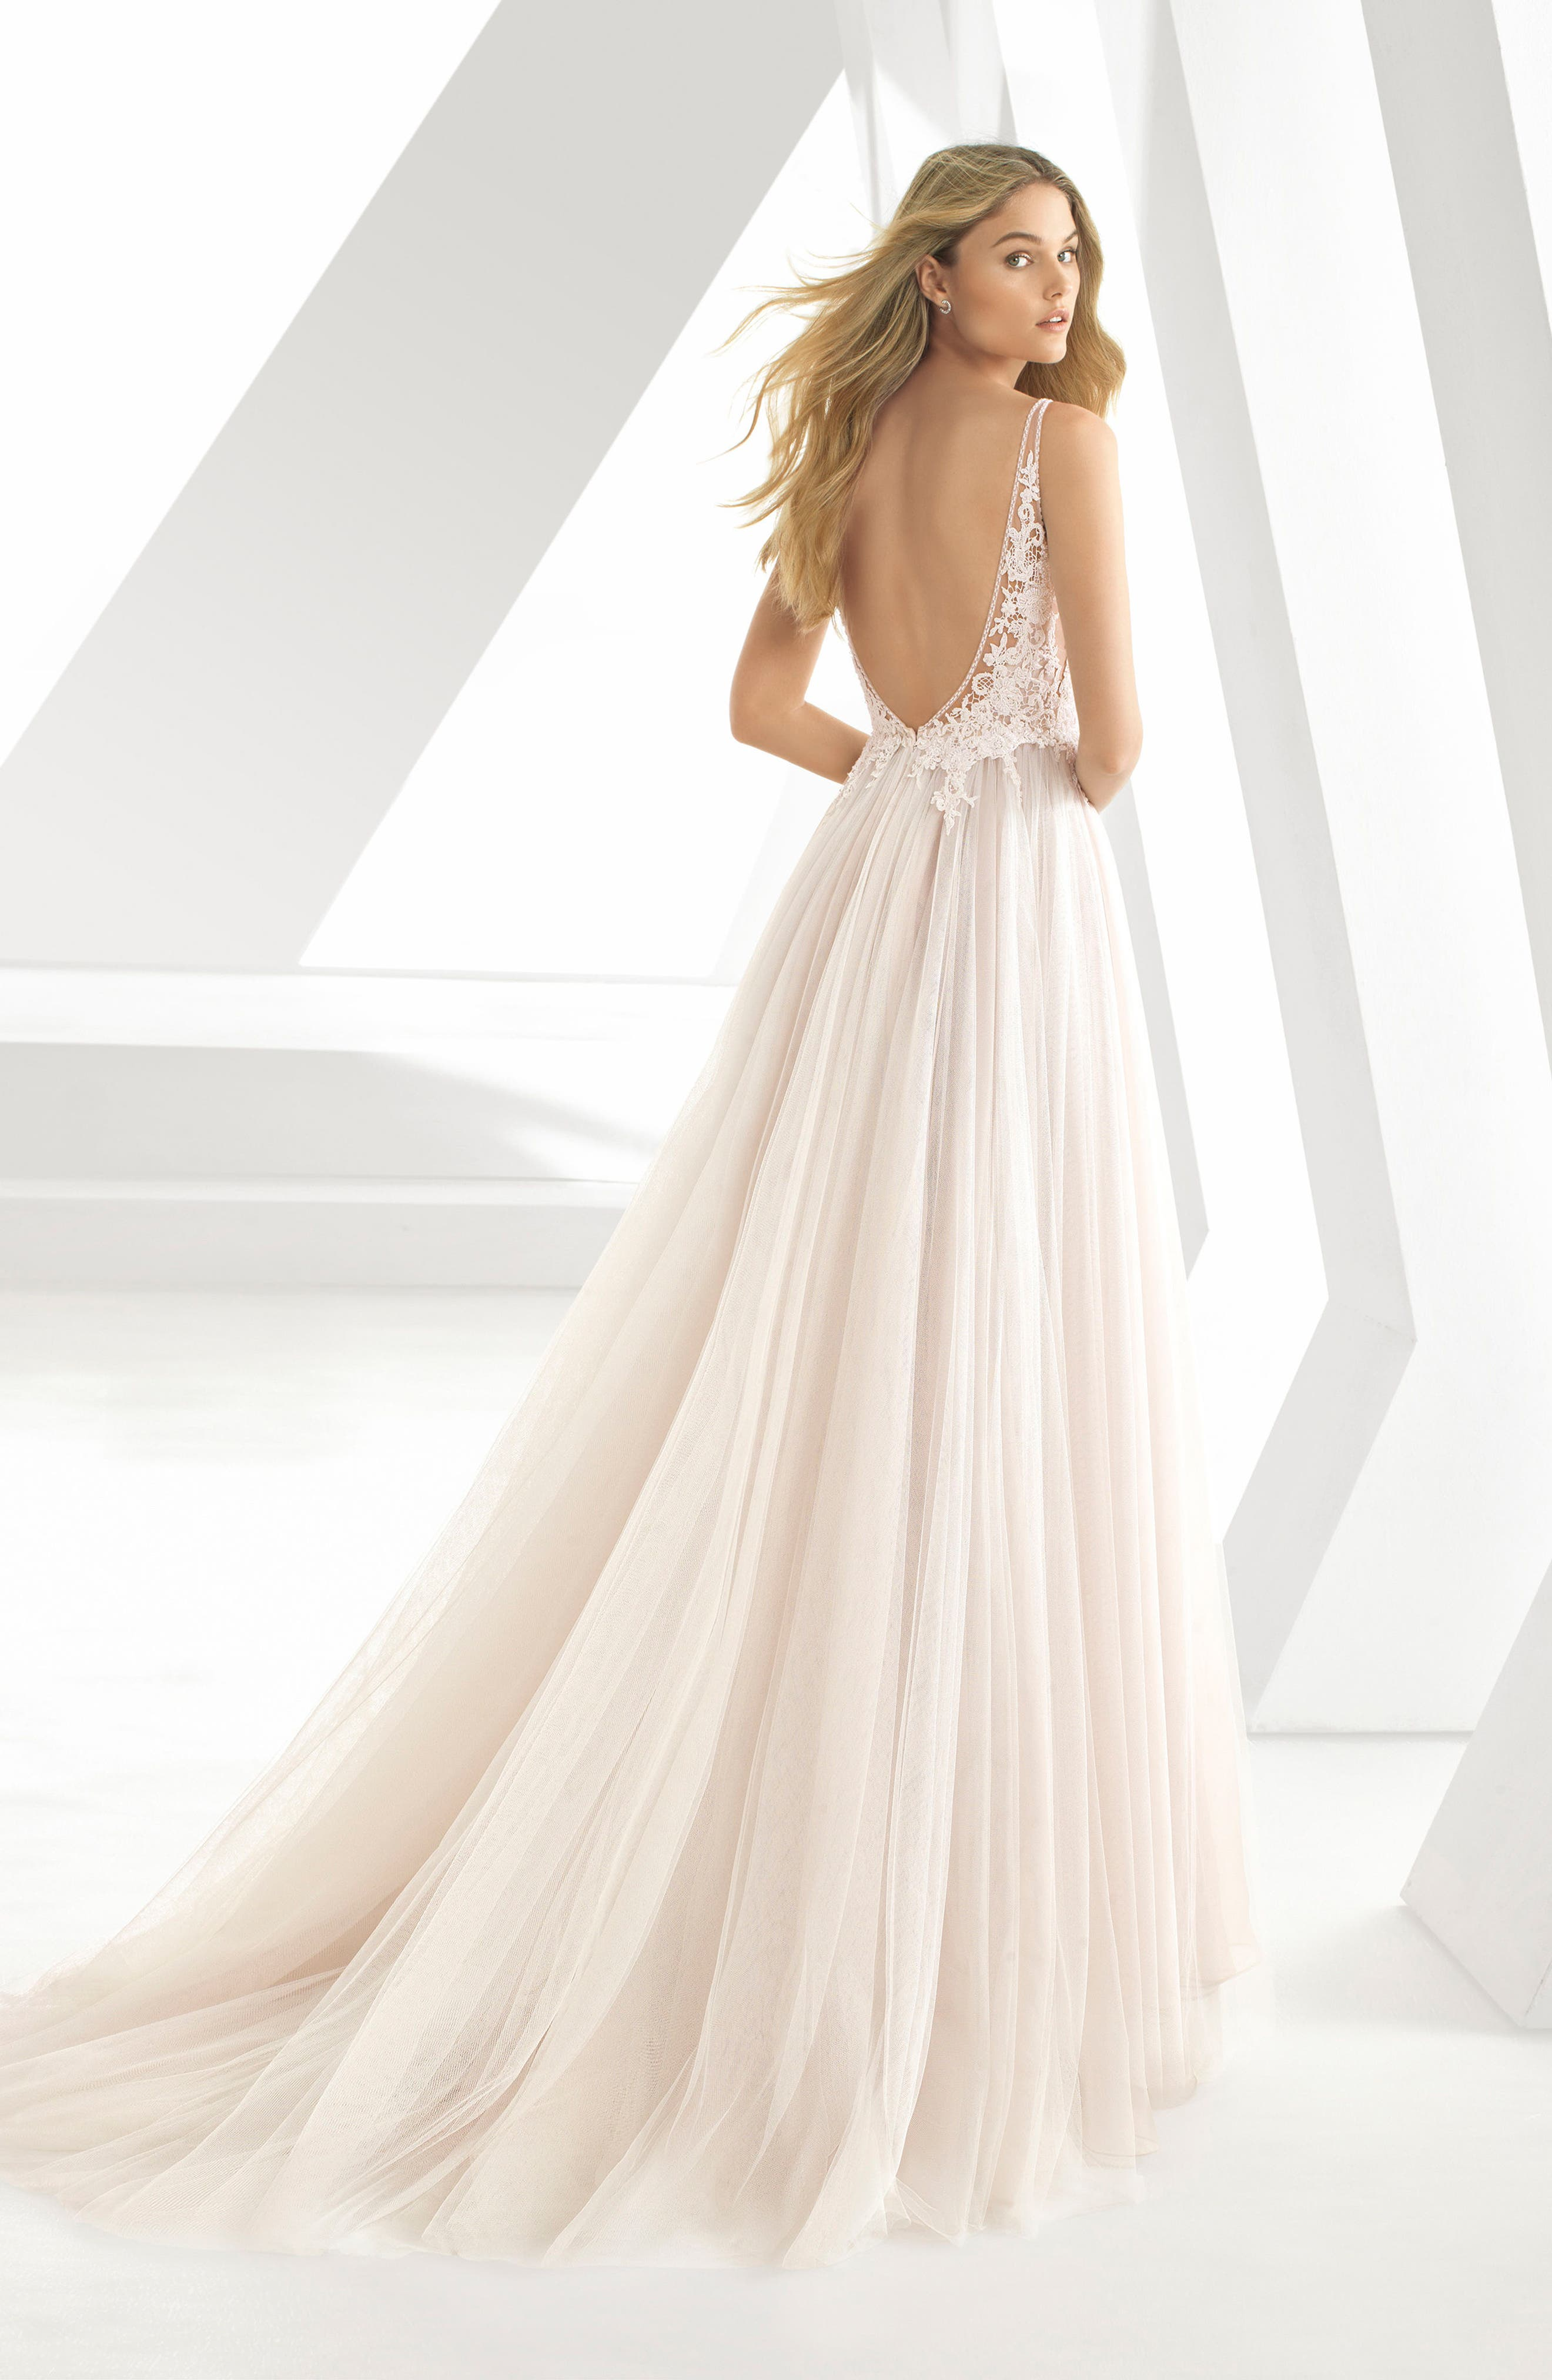 Donata Front Slit Lace & Tulle Wedding Gown,                             Alternate thumbnail 2, color,                             NATURAL/ NUDE